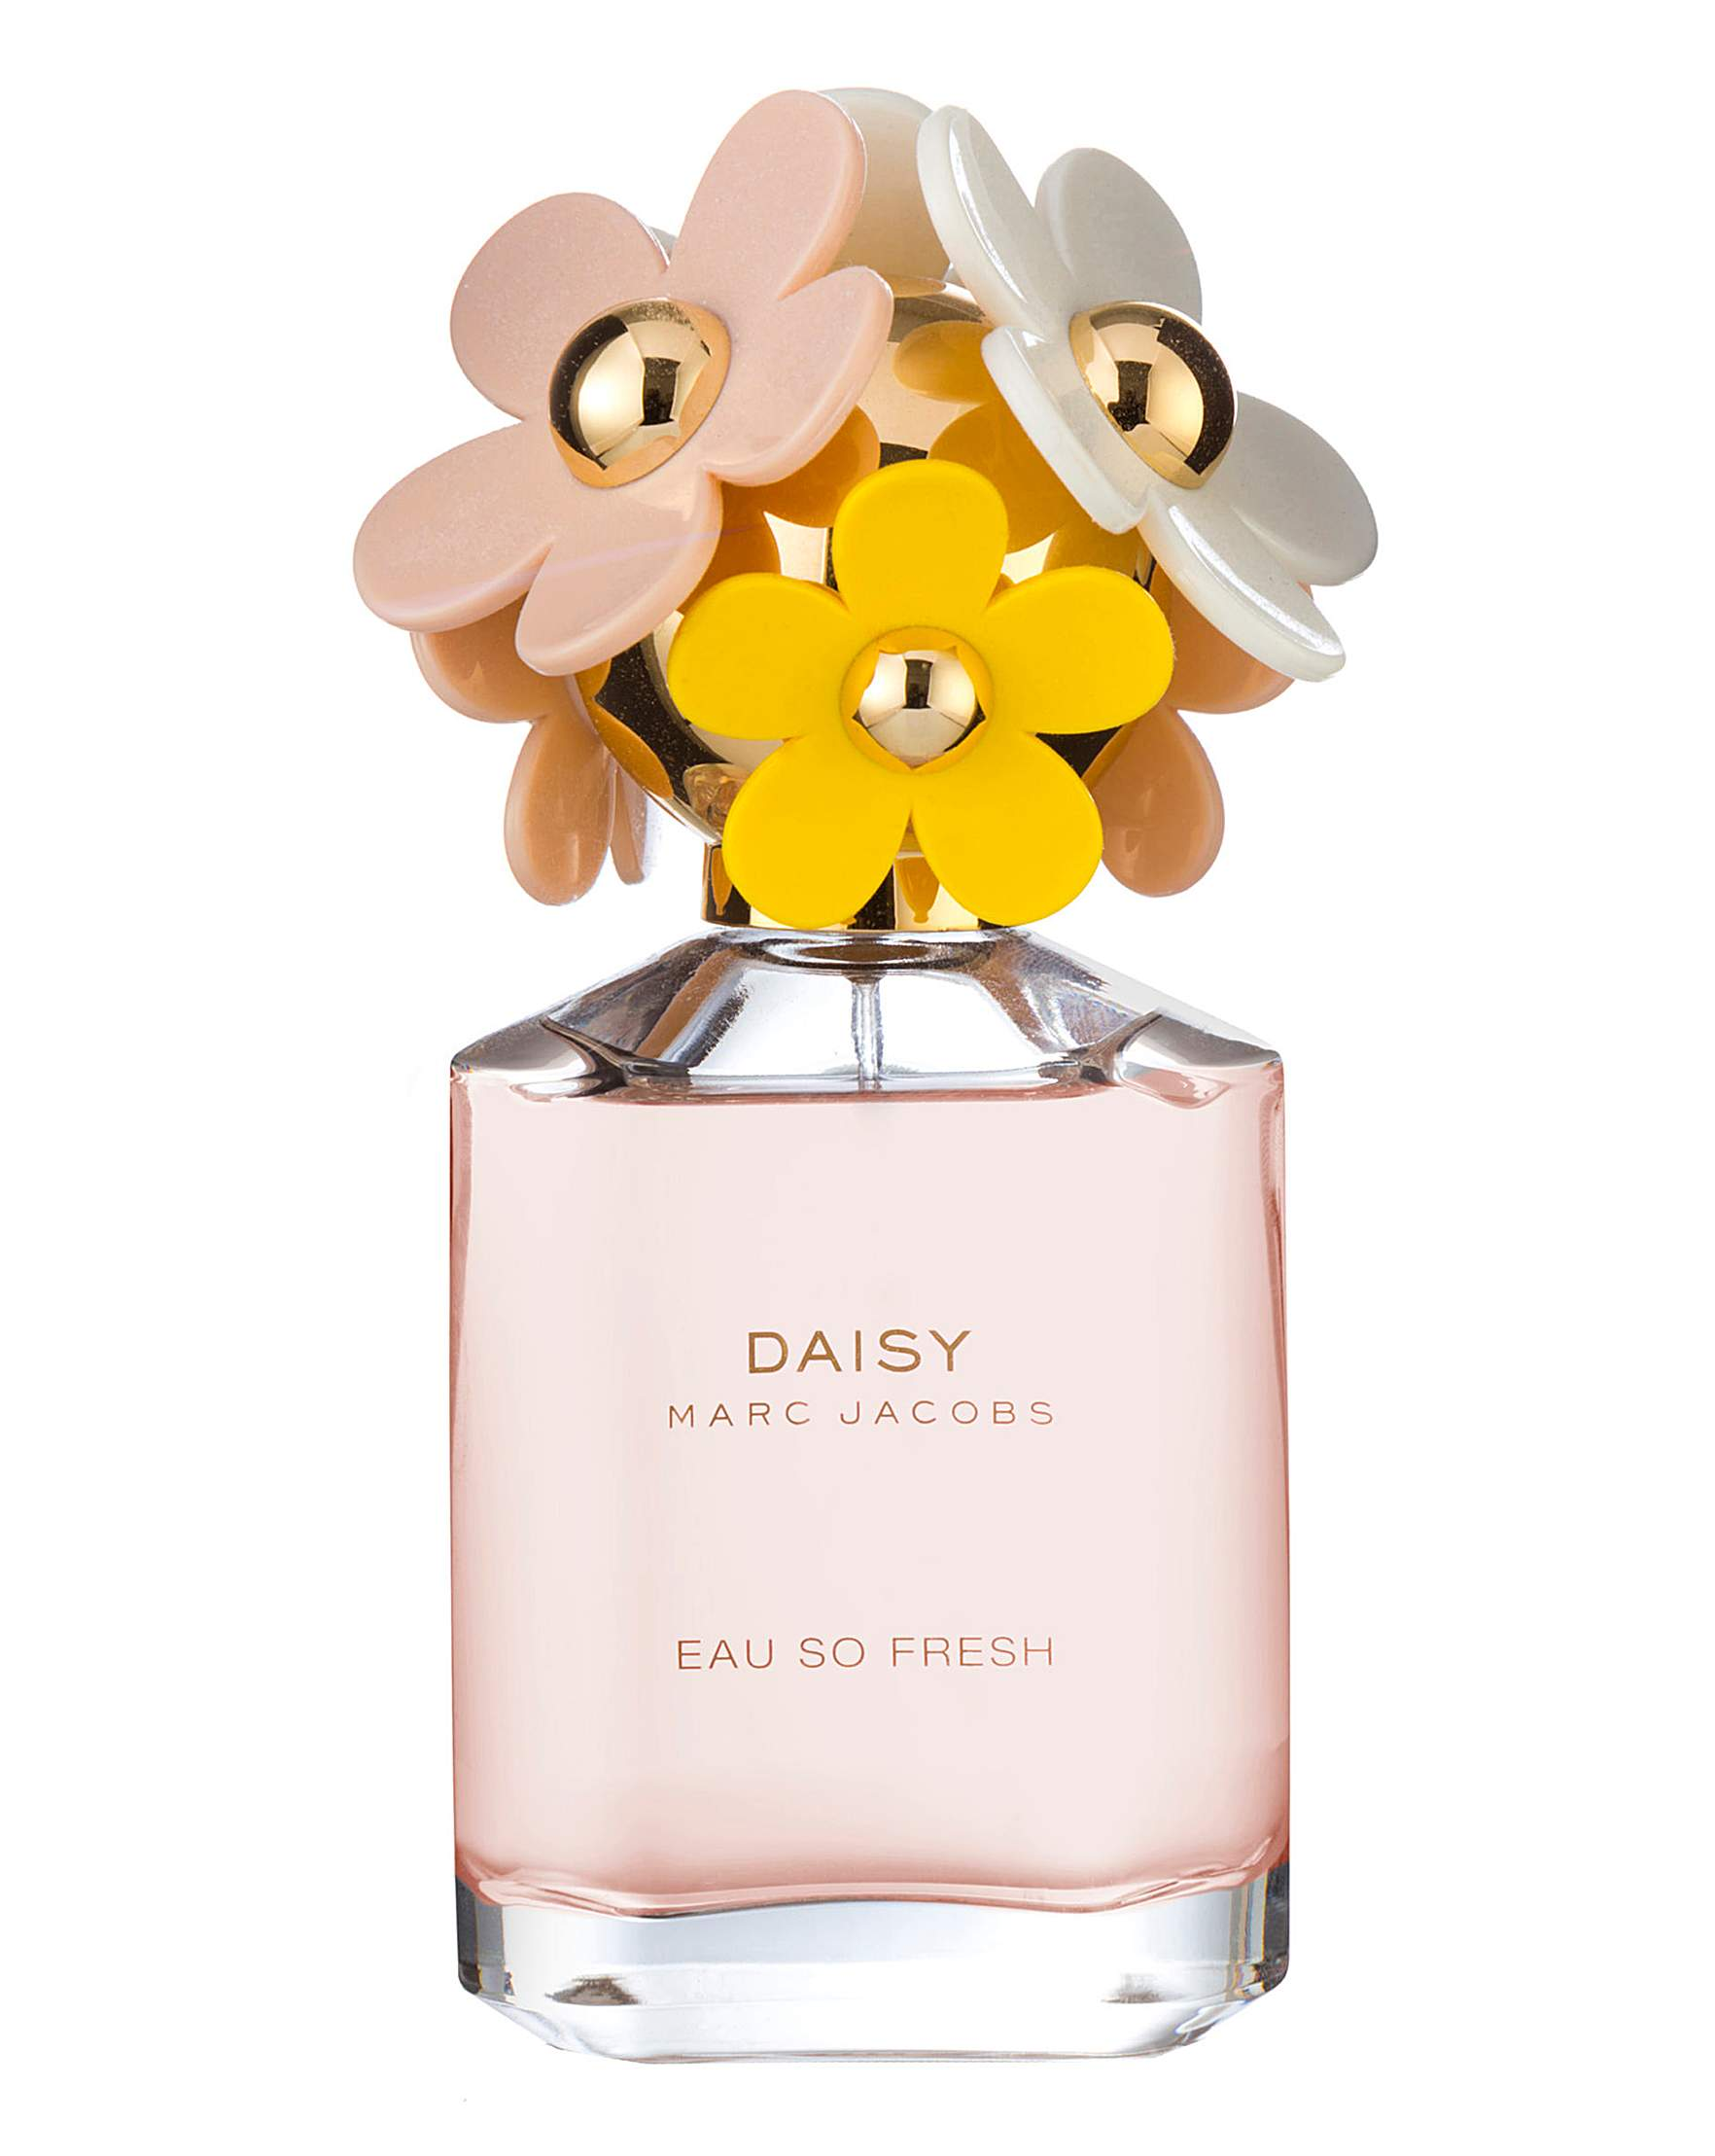 Marc jacobs daisy eau so fresh 75ml edt simply be izmirmasajfo Image collections